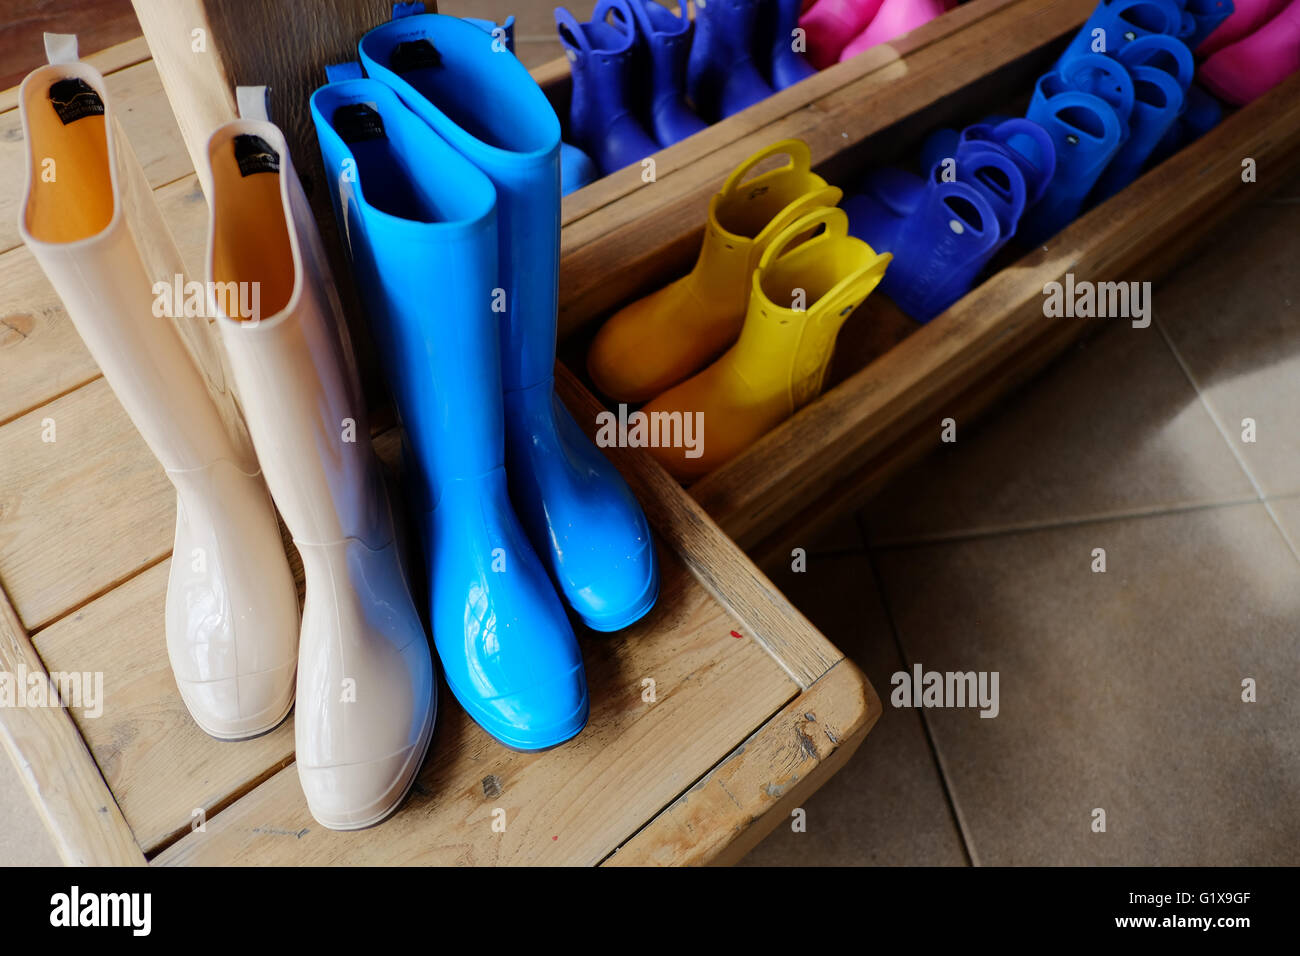 Rubber boots large and small stored in a wooden boot rack. - Stock Image